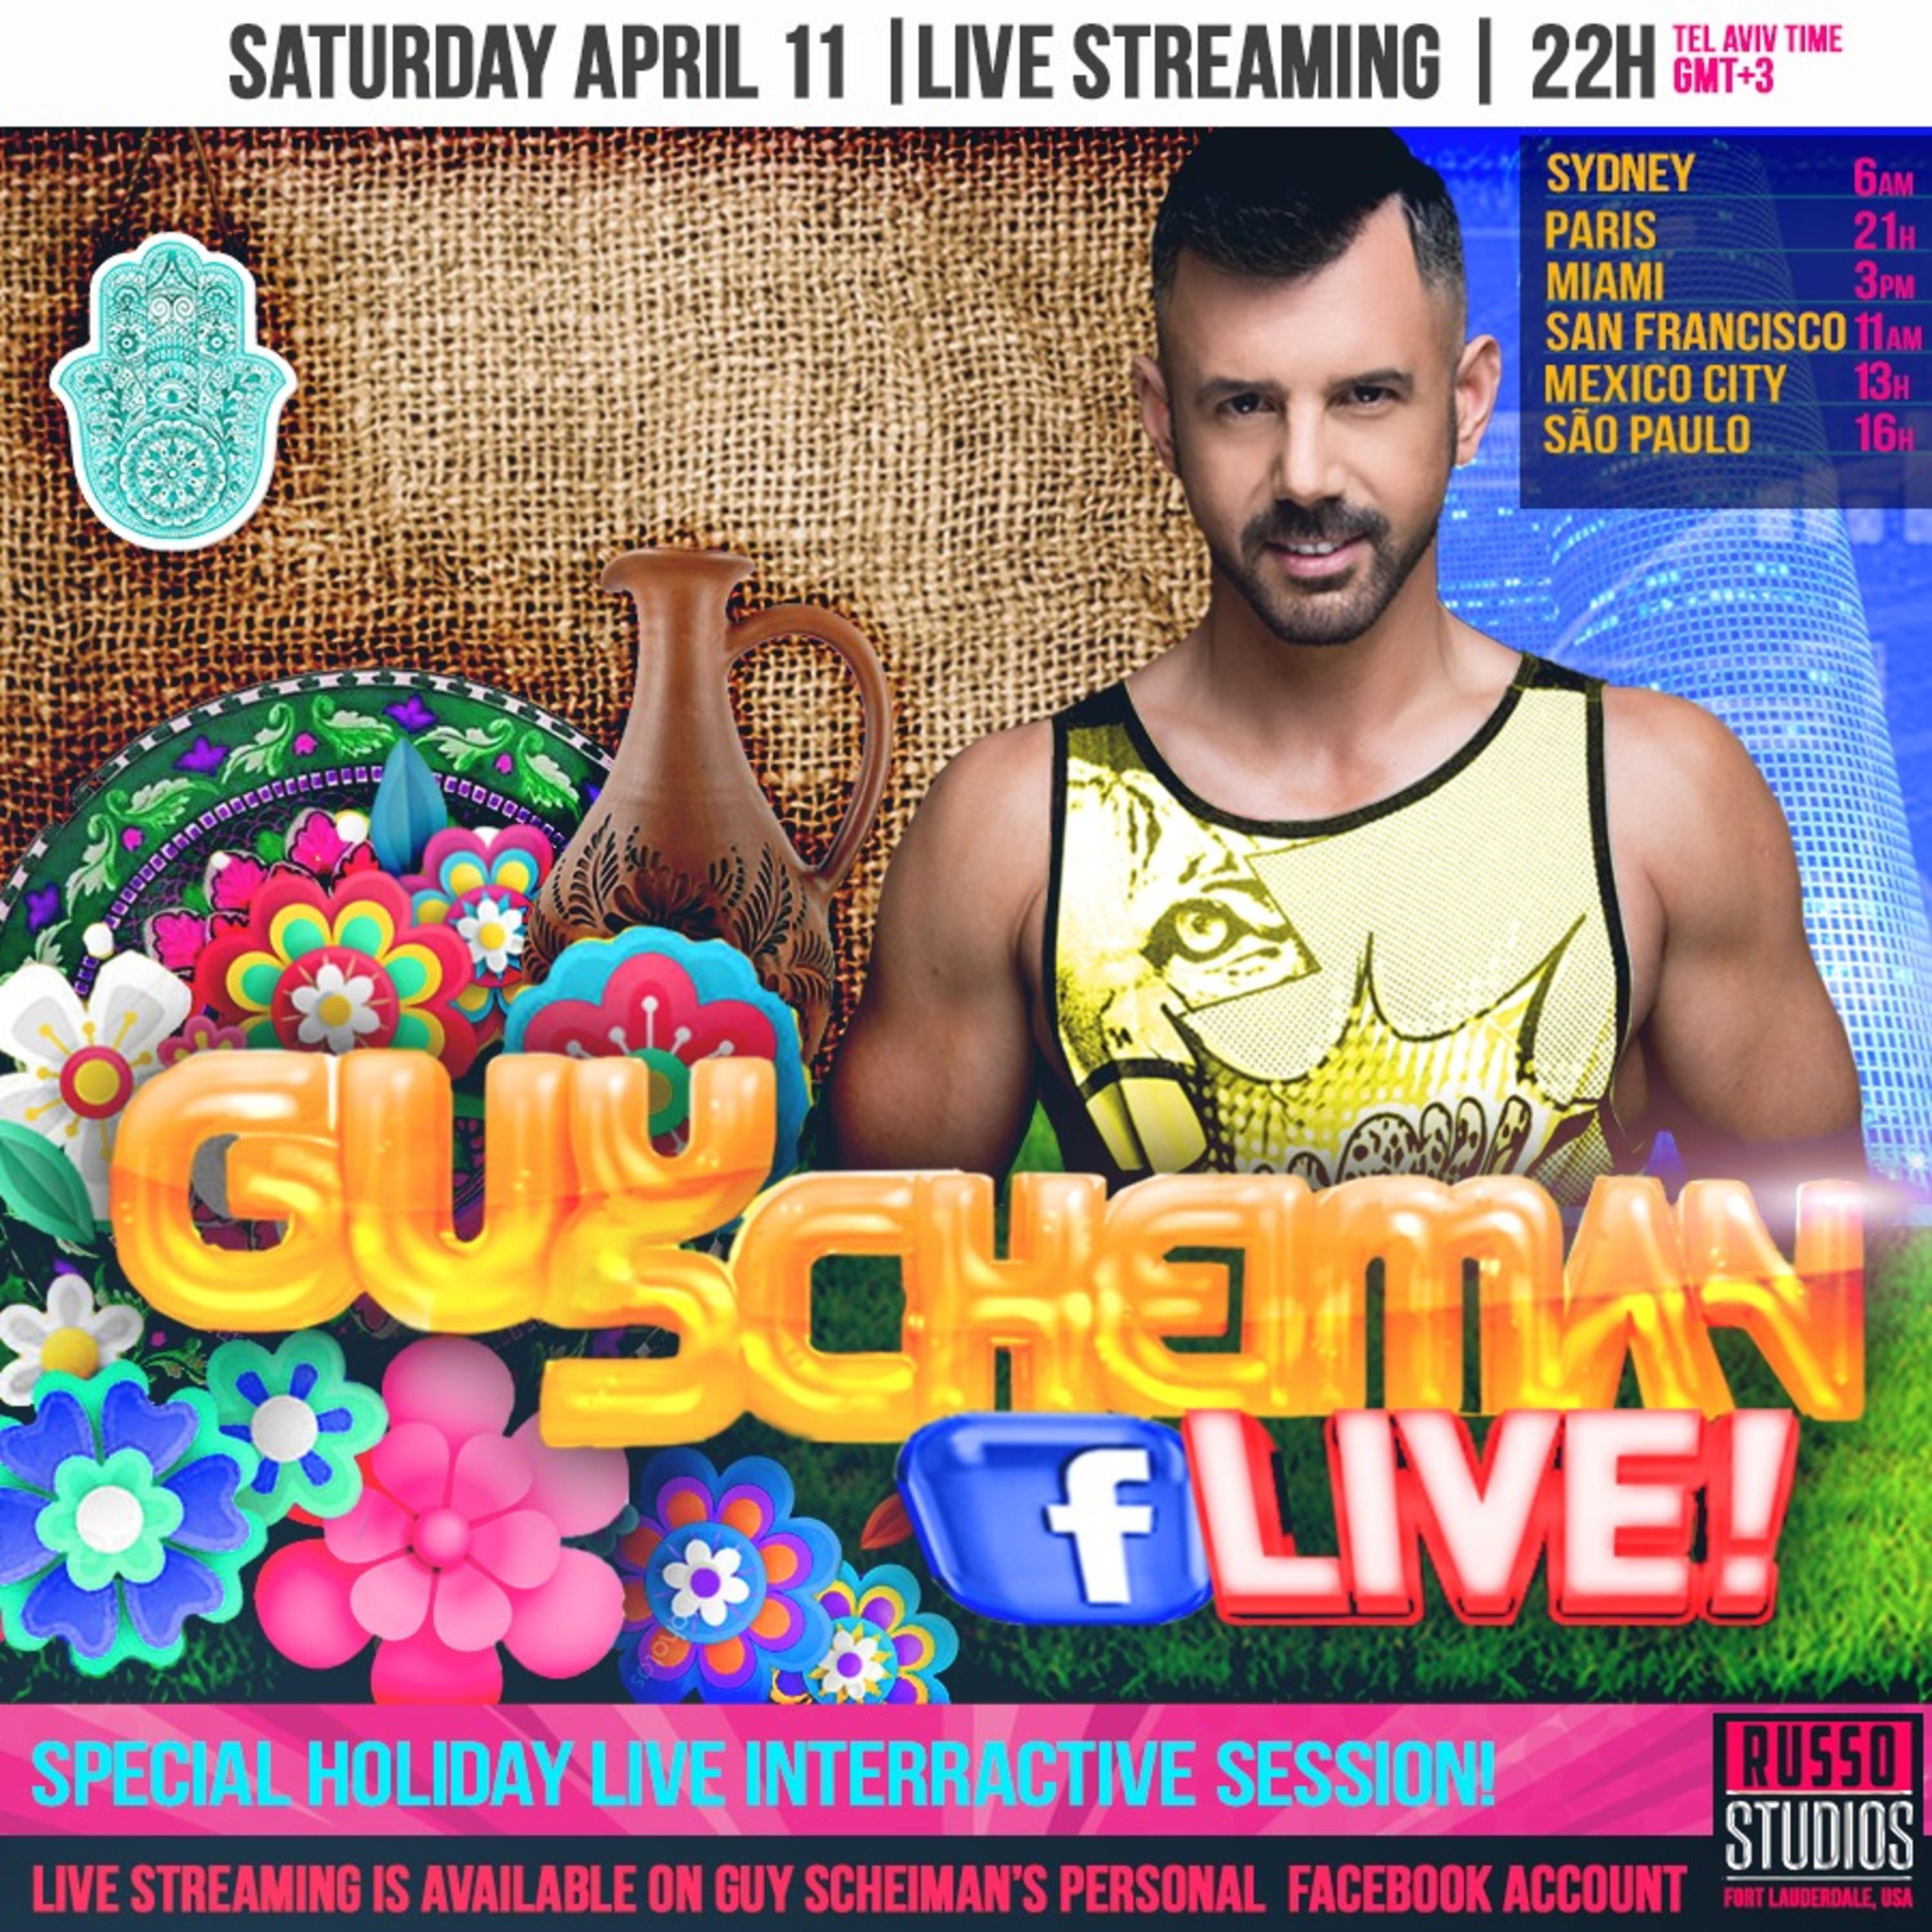 Guy Scheiman live Holiday Stream 11th April 2020